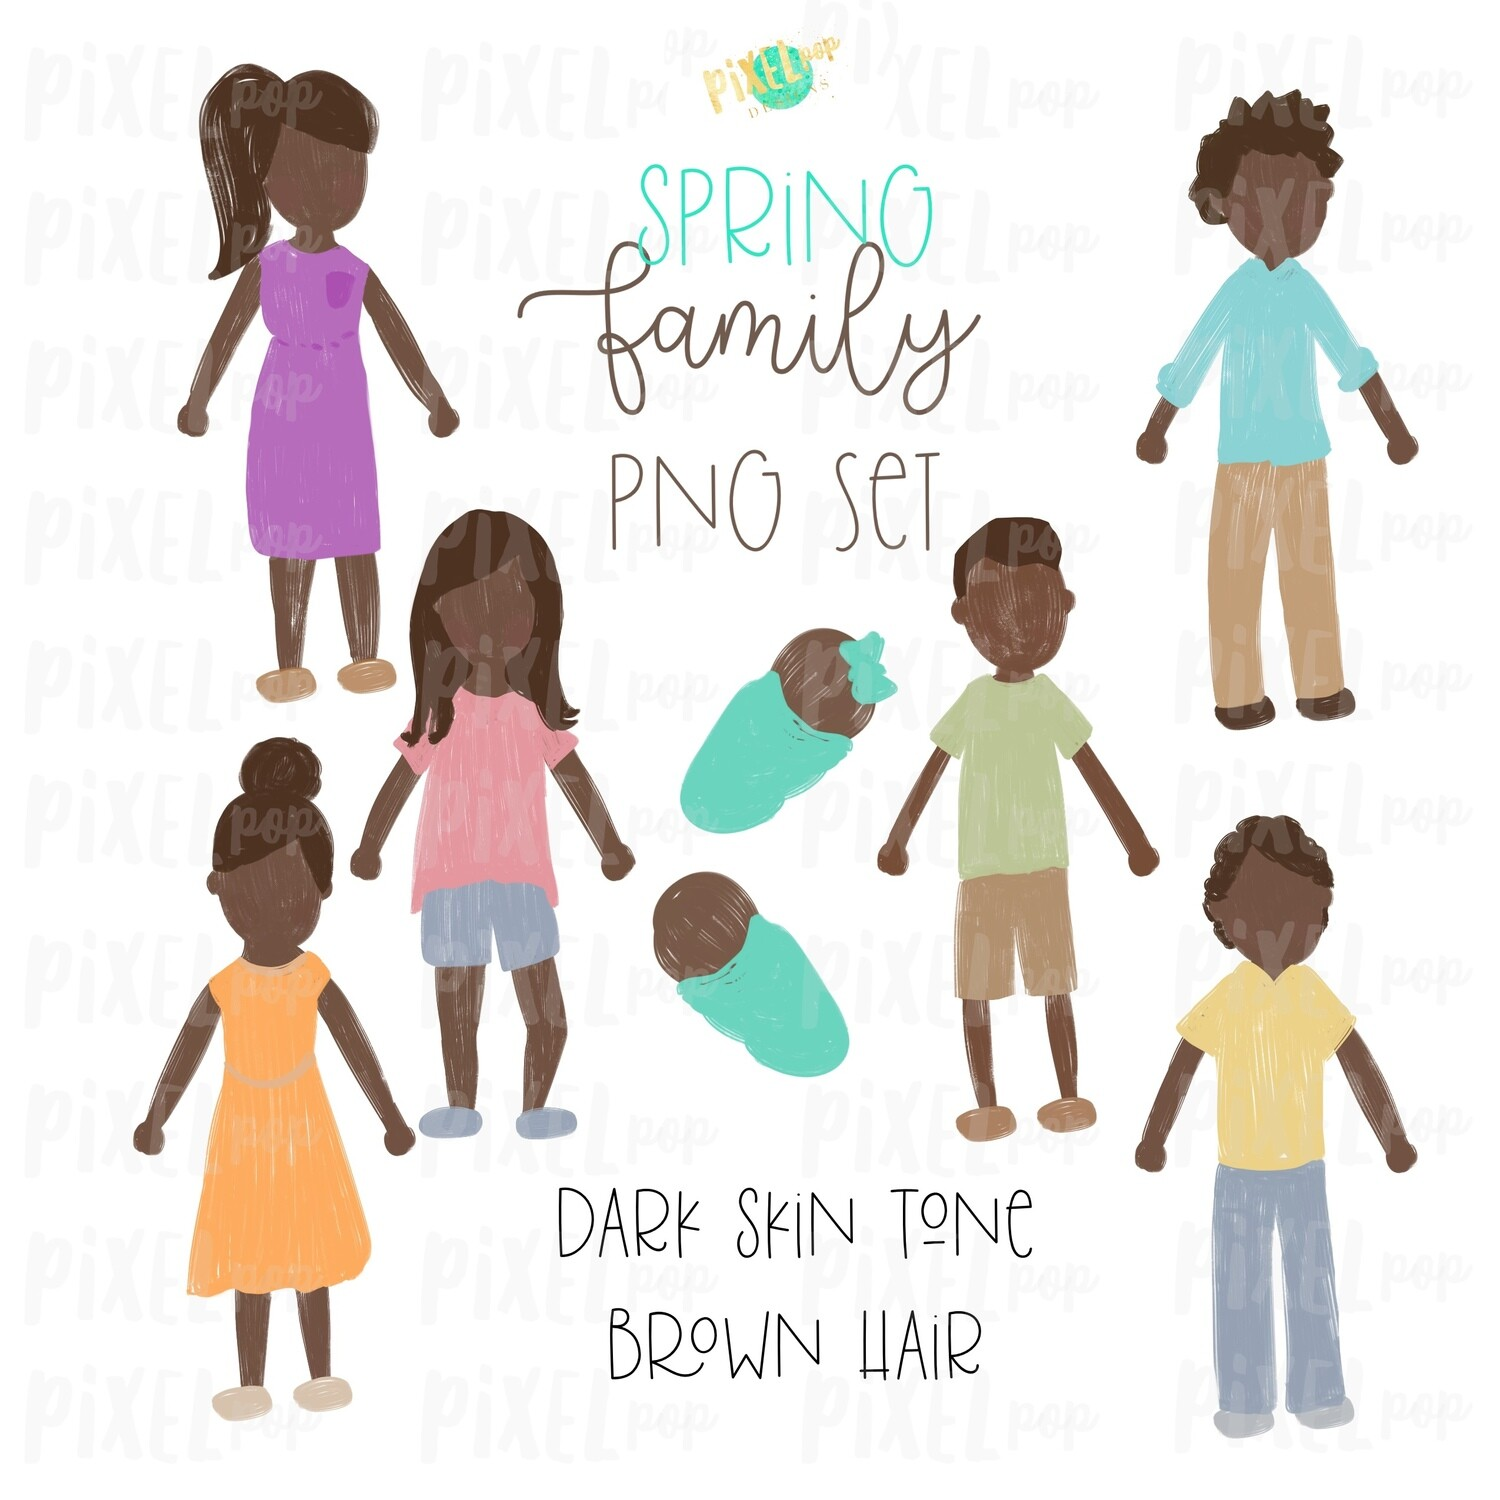 SPRING Dark Skin Brown Hair Stick People Figure Family PNG Sublimation | Family Ornament | Family Portrait Images | Digital Download